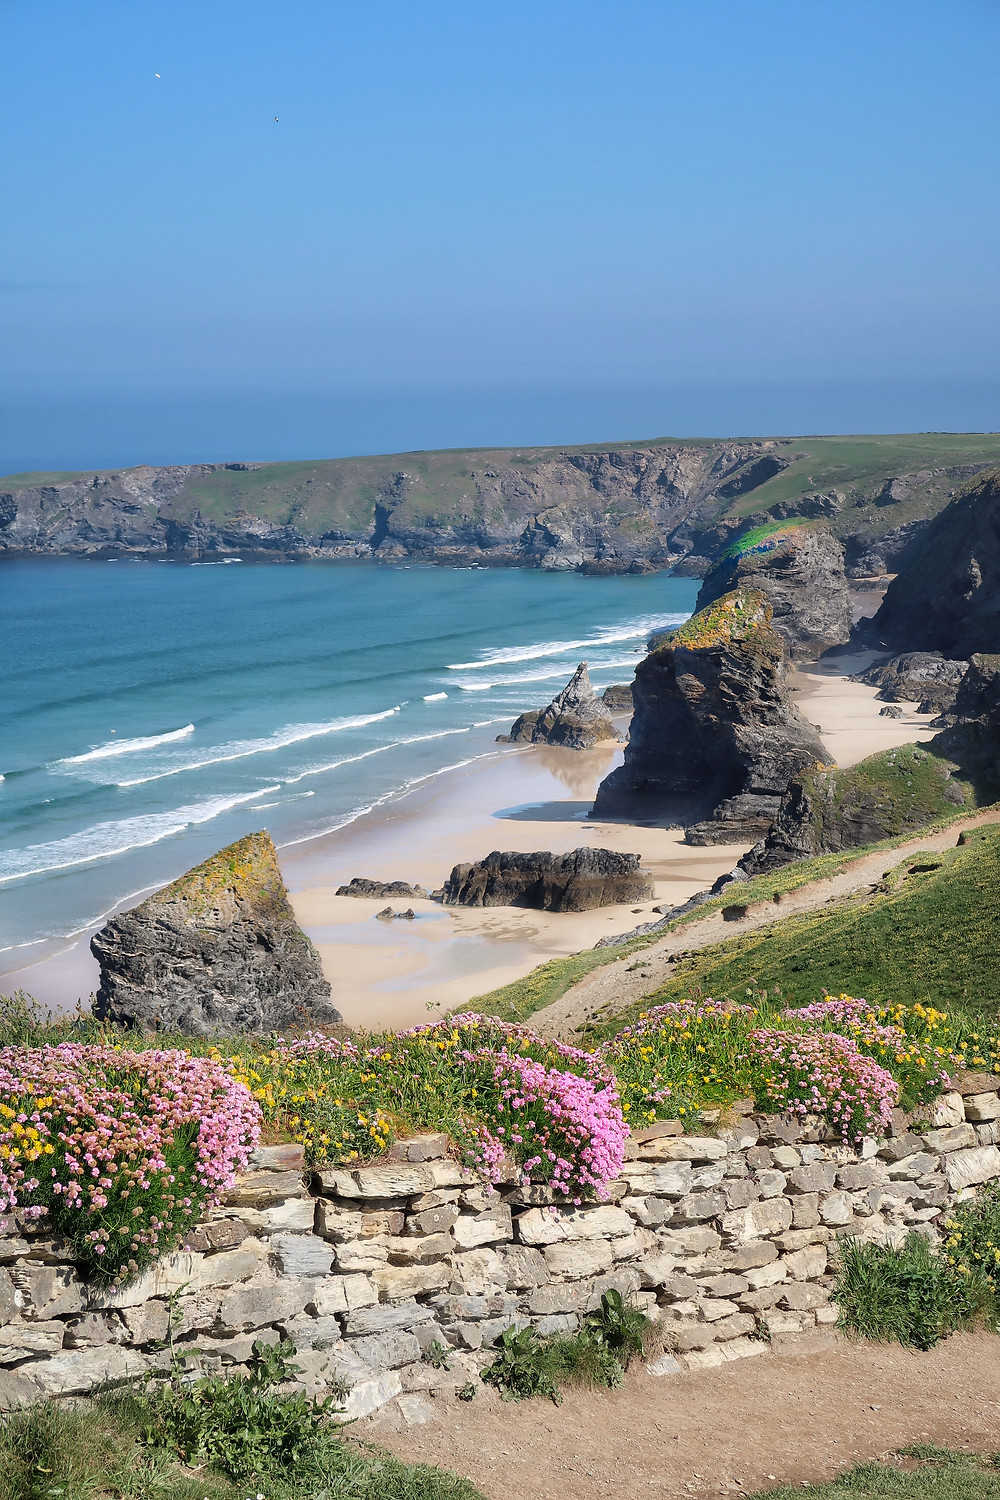 Cornish coast path walking, treat sitting disease, counter sedentary lifestyle. Cheap, safe and life enhancing. Wellbeing nectar